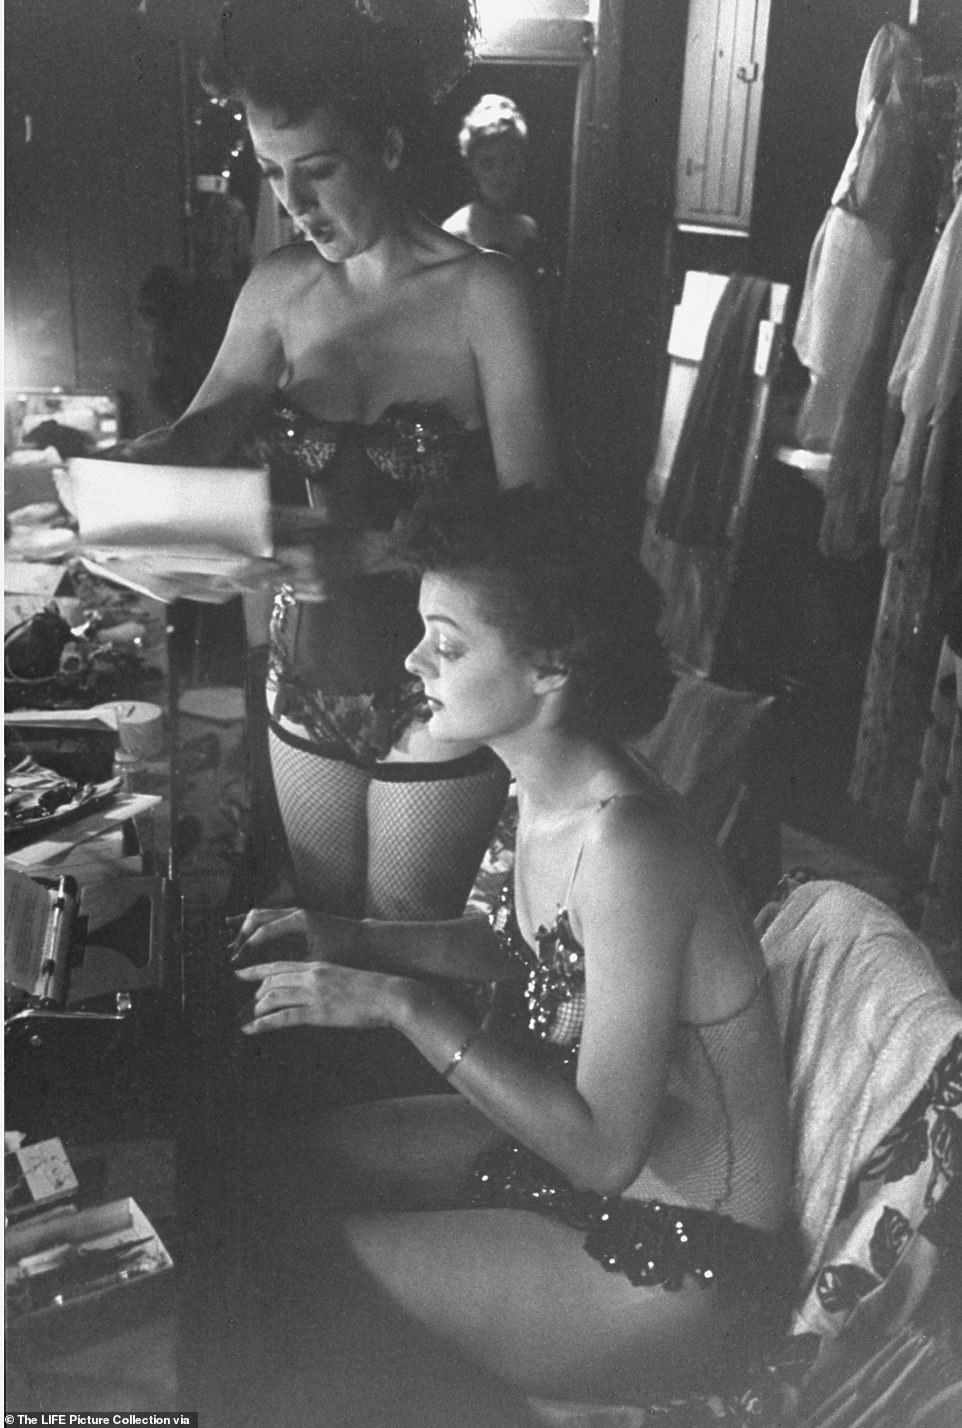 Gypsy Rose Lee (left) dictates a letter to her secretary Brandy Bryant, who was also a backup dancer in Gypsy's carnival stint. In 1941, Lee publishedThe G-String Murders, a best selling pulpy crime caper about a group of strippers that were strangled by their own G-string panties. She went on to write three more books and several screen plays that were produced on Broadway. Though nothing was as successful as her 1957 memoir Gypsy, which became one of the greatest musicals ever written, with lyrics by Stephen Sondheim